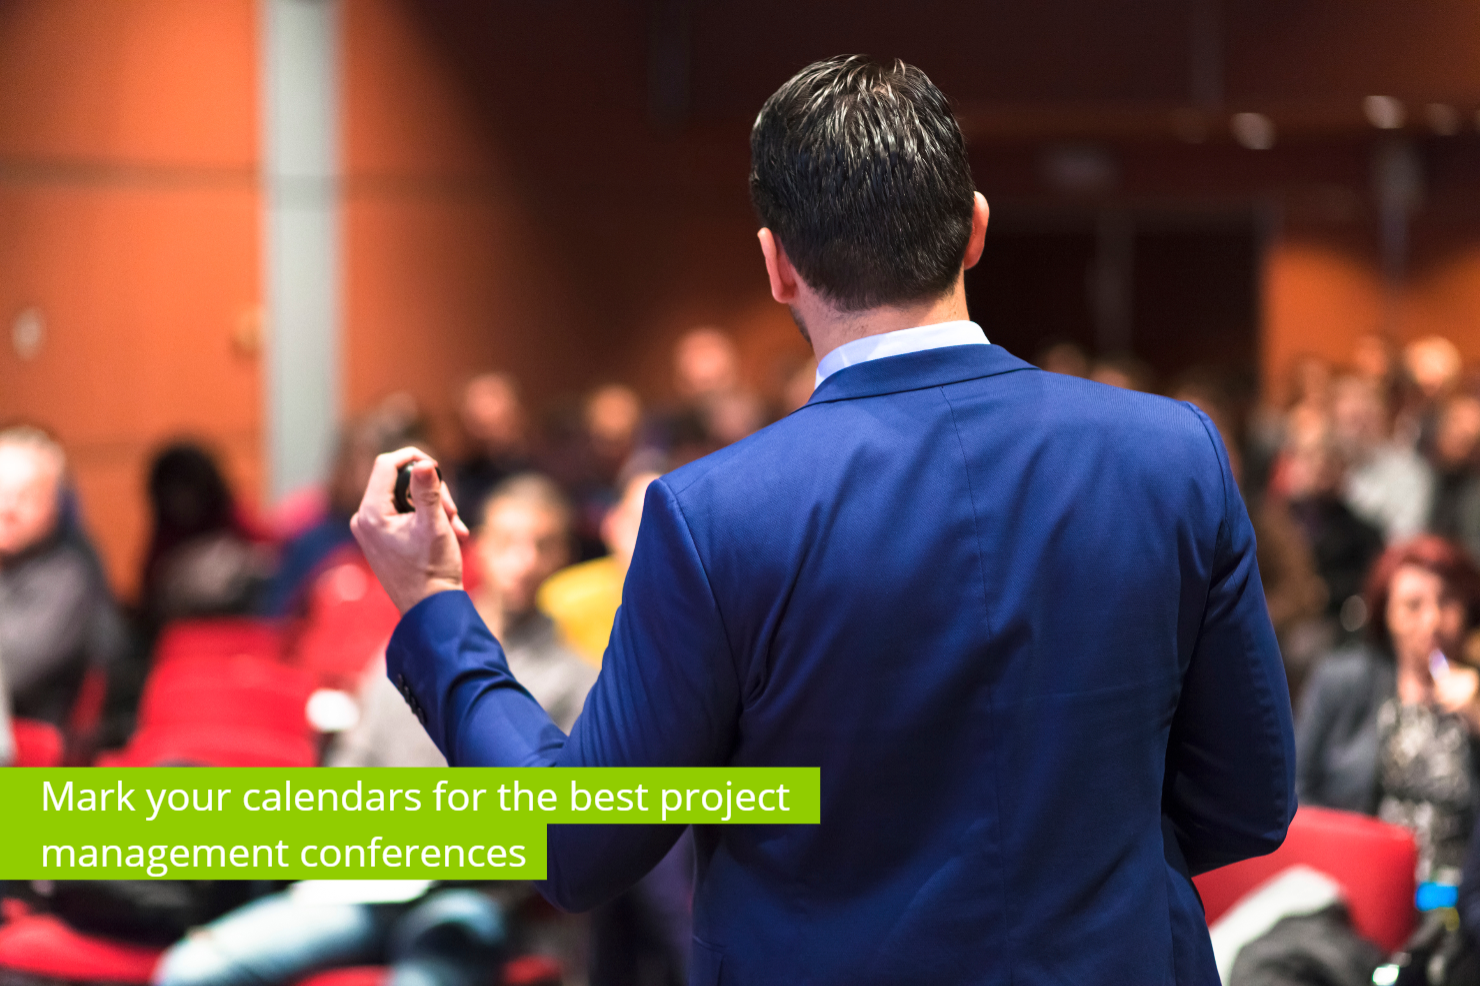 The Best Project Management Conferences to Attend in 2018